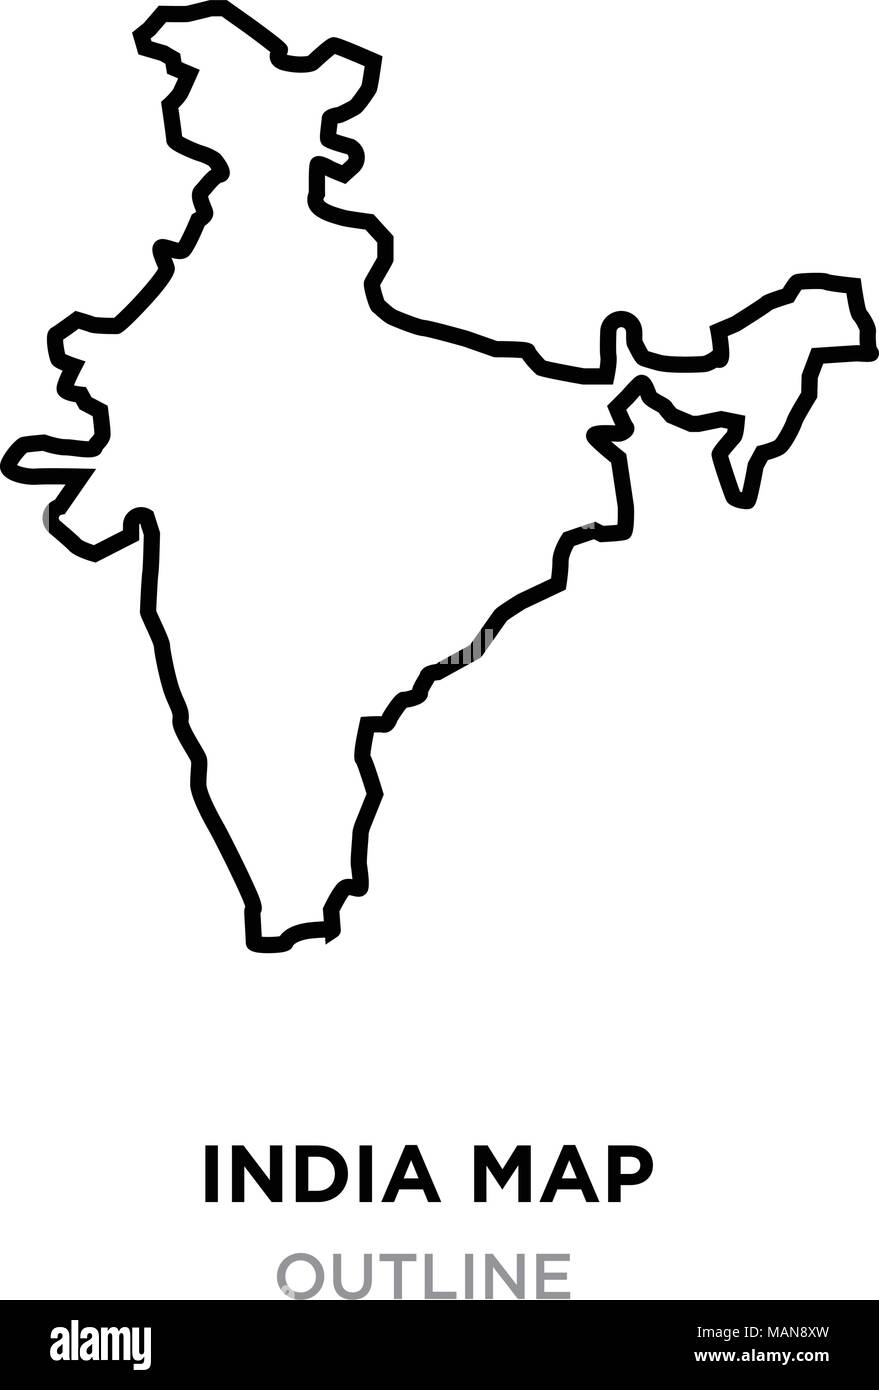 india map outline png on white background, vector illustration Stock ...